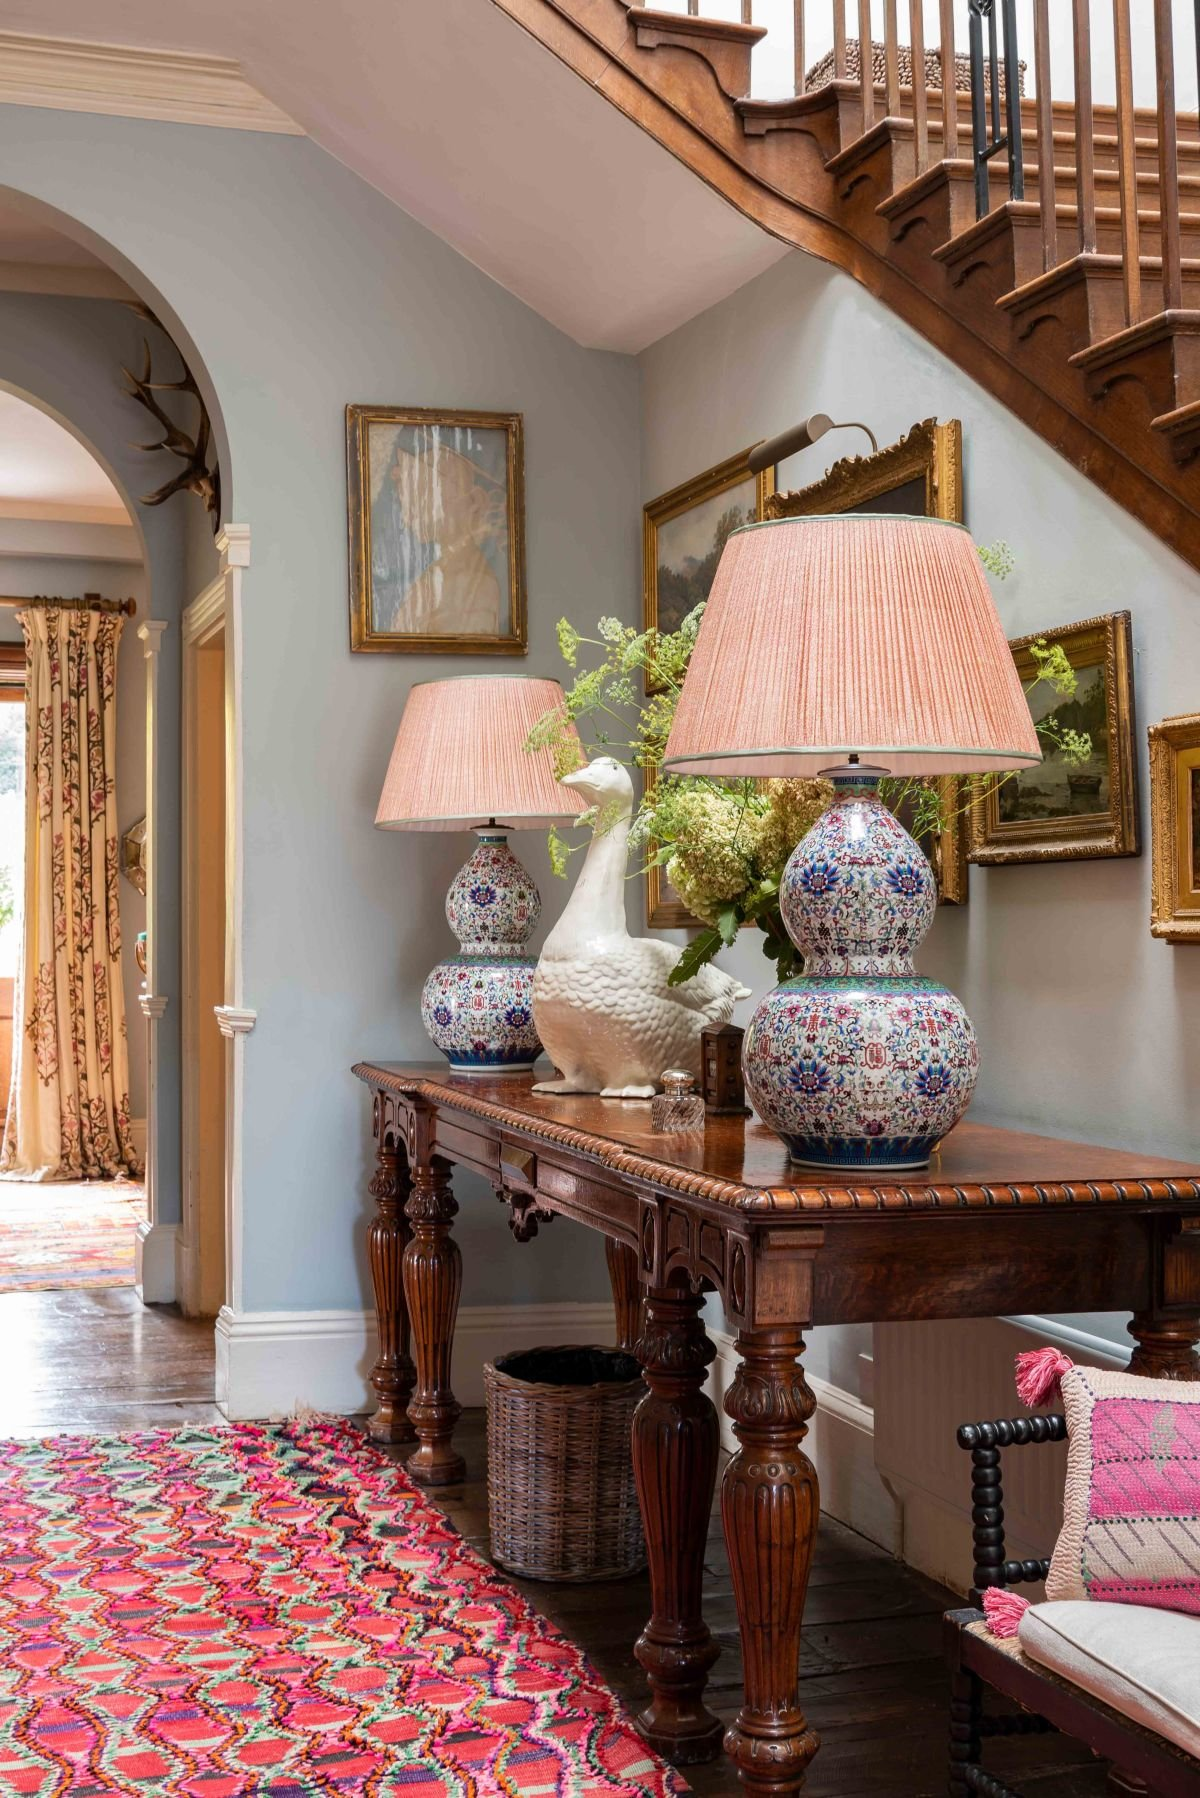 Make an entrance with these hallway design tips - cover